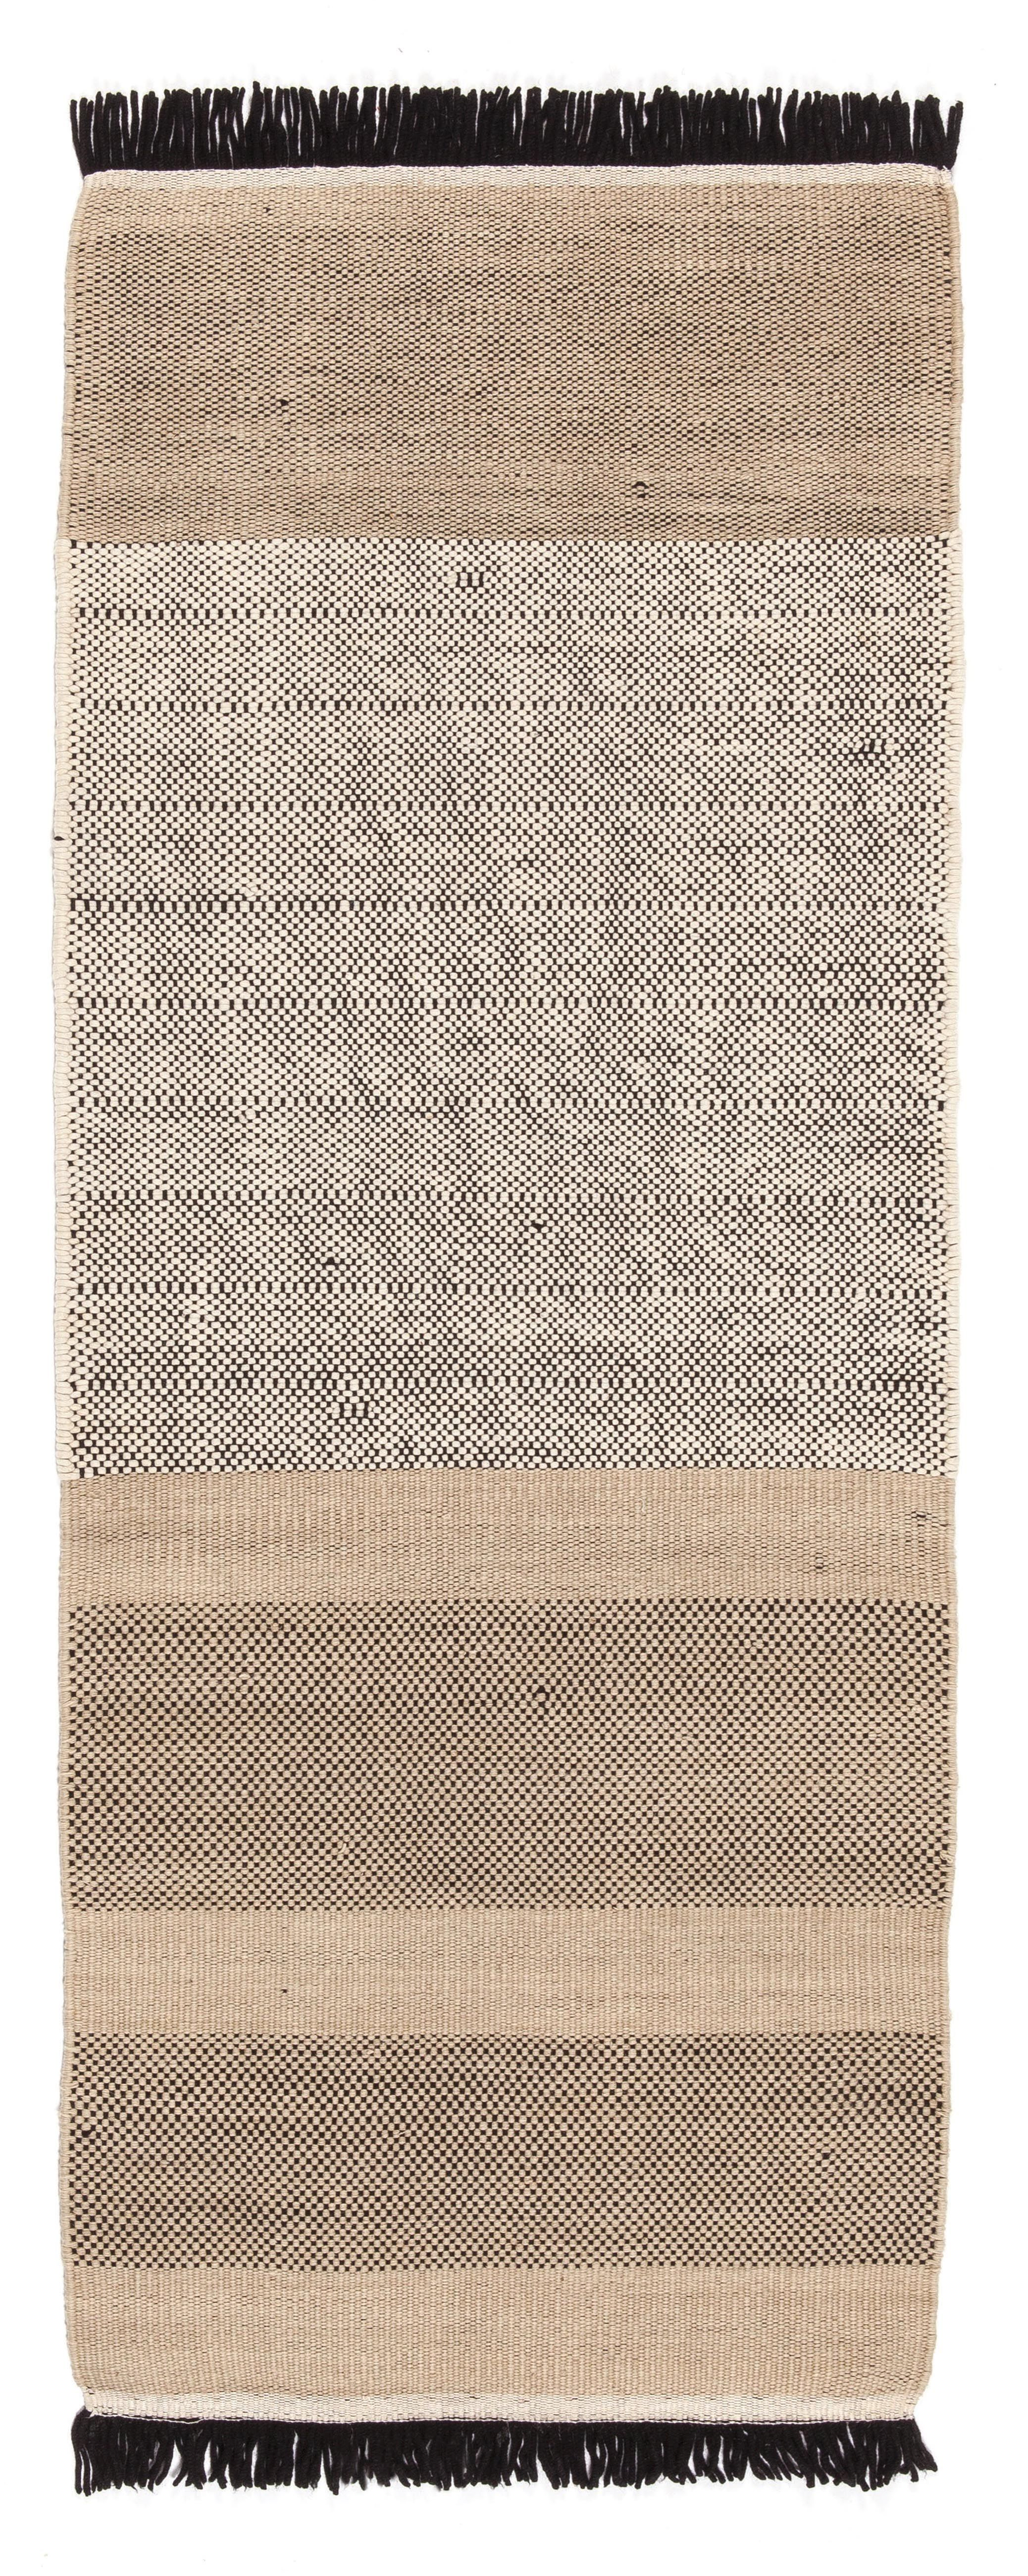 Decoration - Rugs - Tres stripes Rug - 80 x 240 cm by Nanimarquina - Black and beige - New-Zealand wool Felted wool